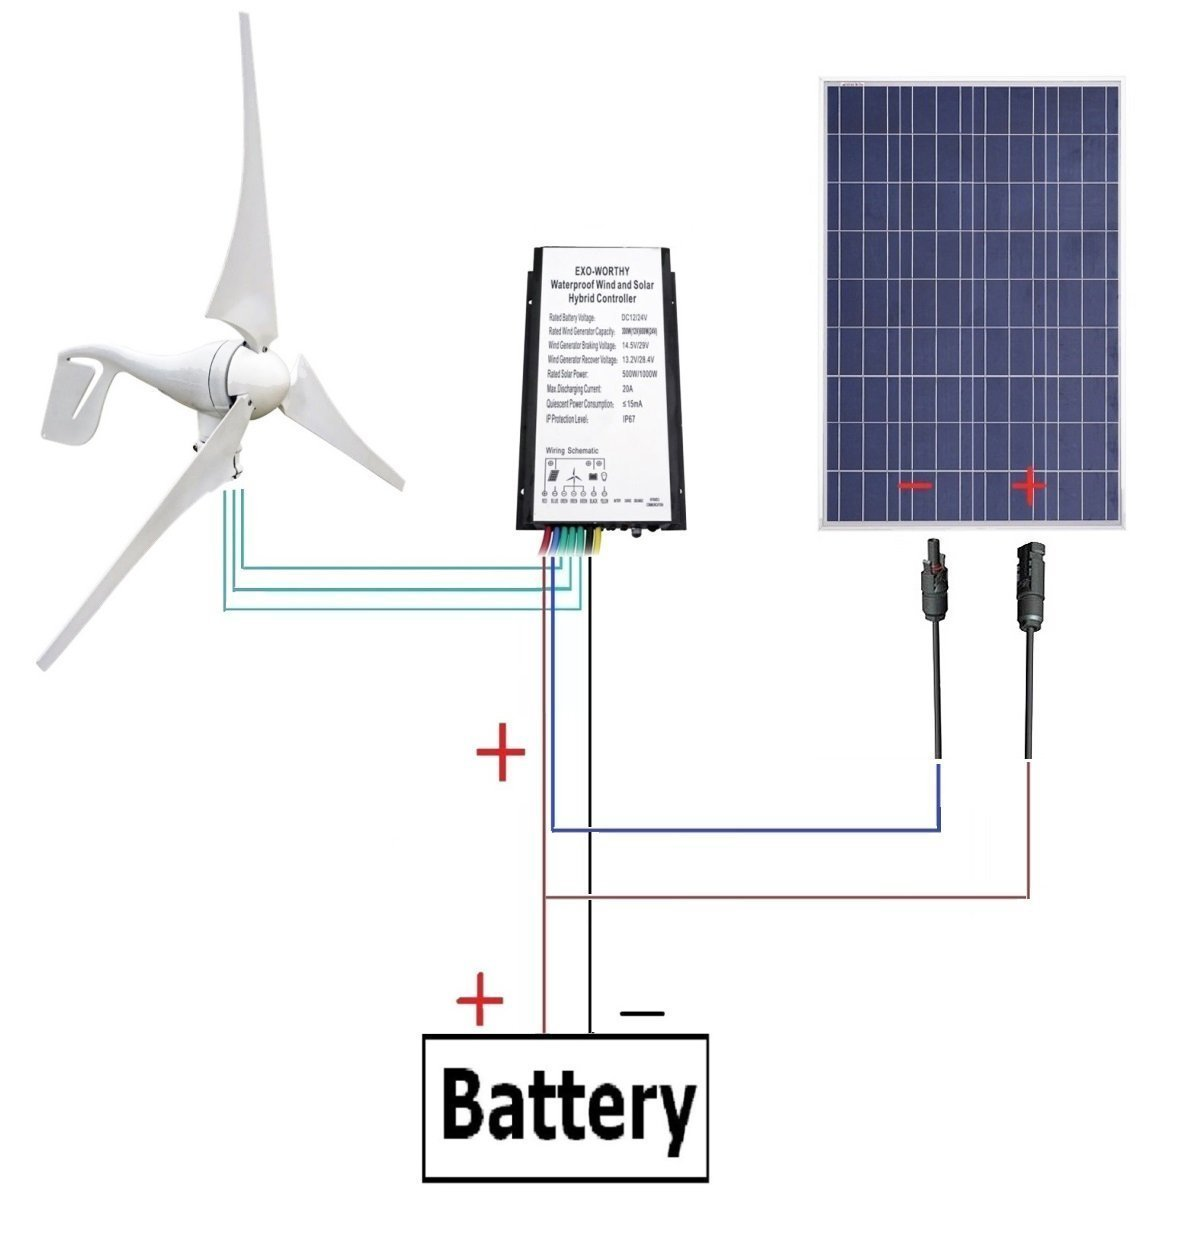 Pole Mount Solar Wiring Diagrams Library 12 Volt Converter Diagram Amazoncom Eco Worthy Volts 500 Watts Wind Generator 12v